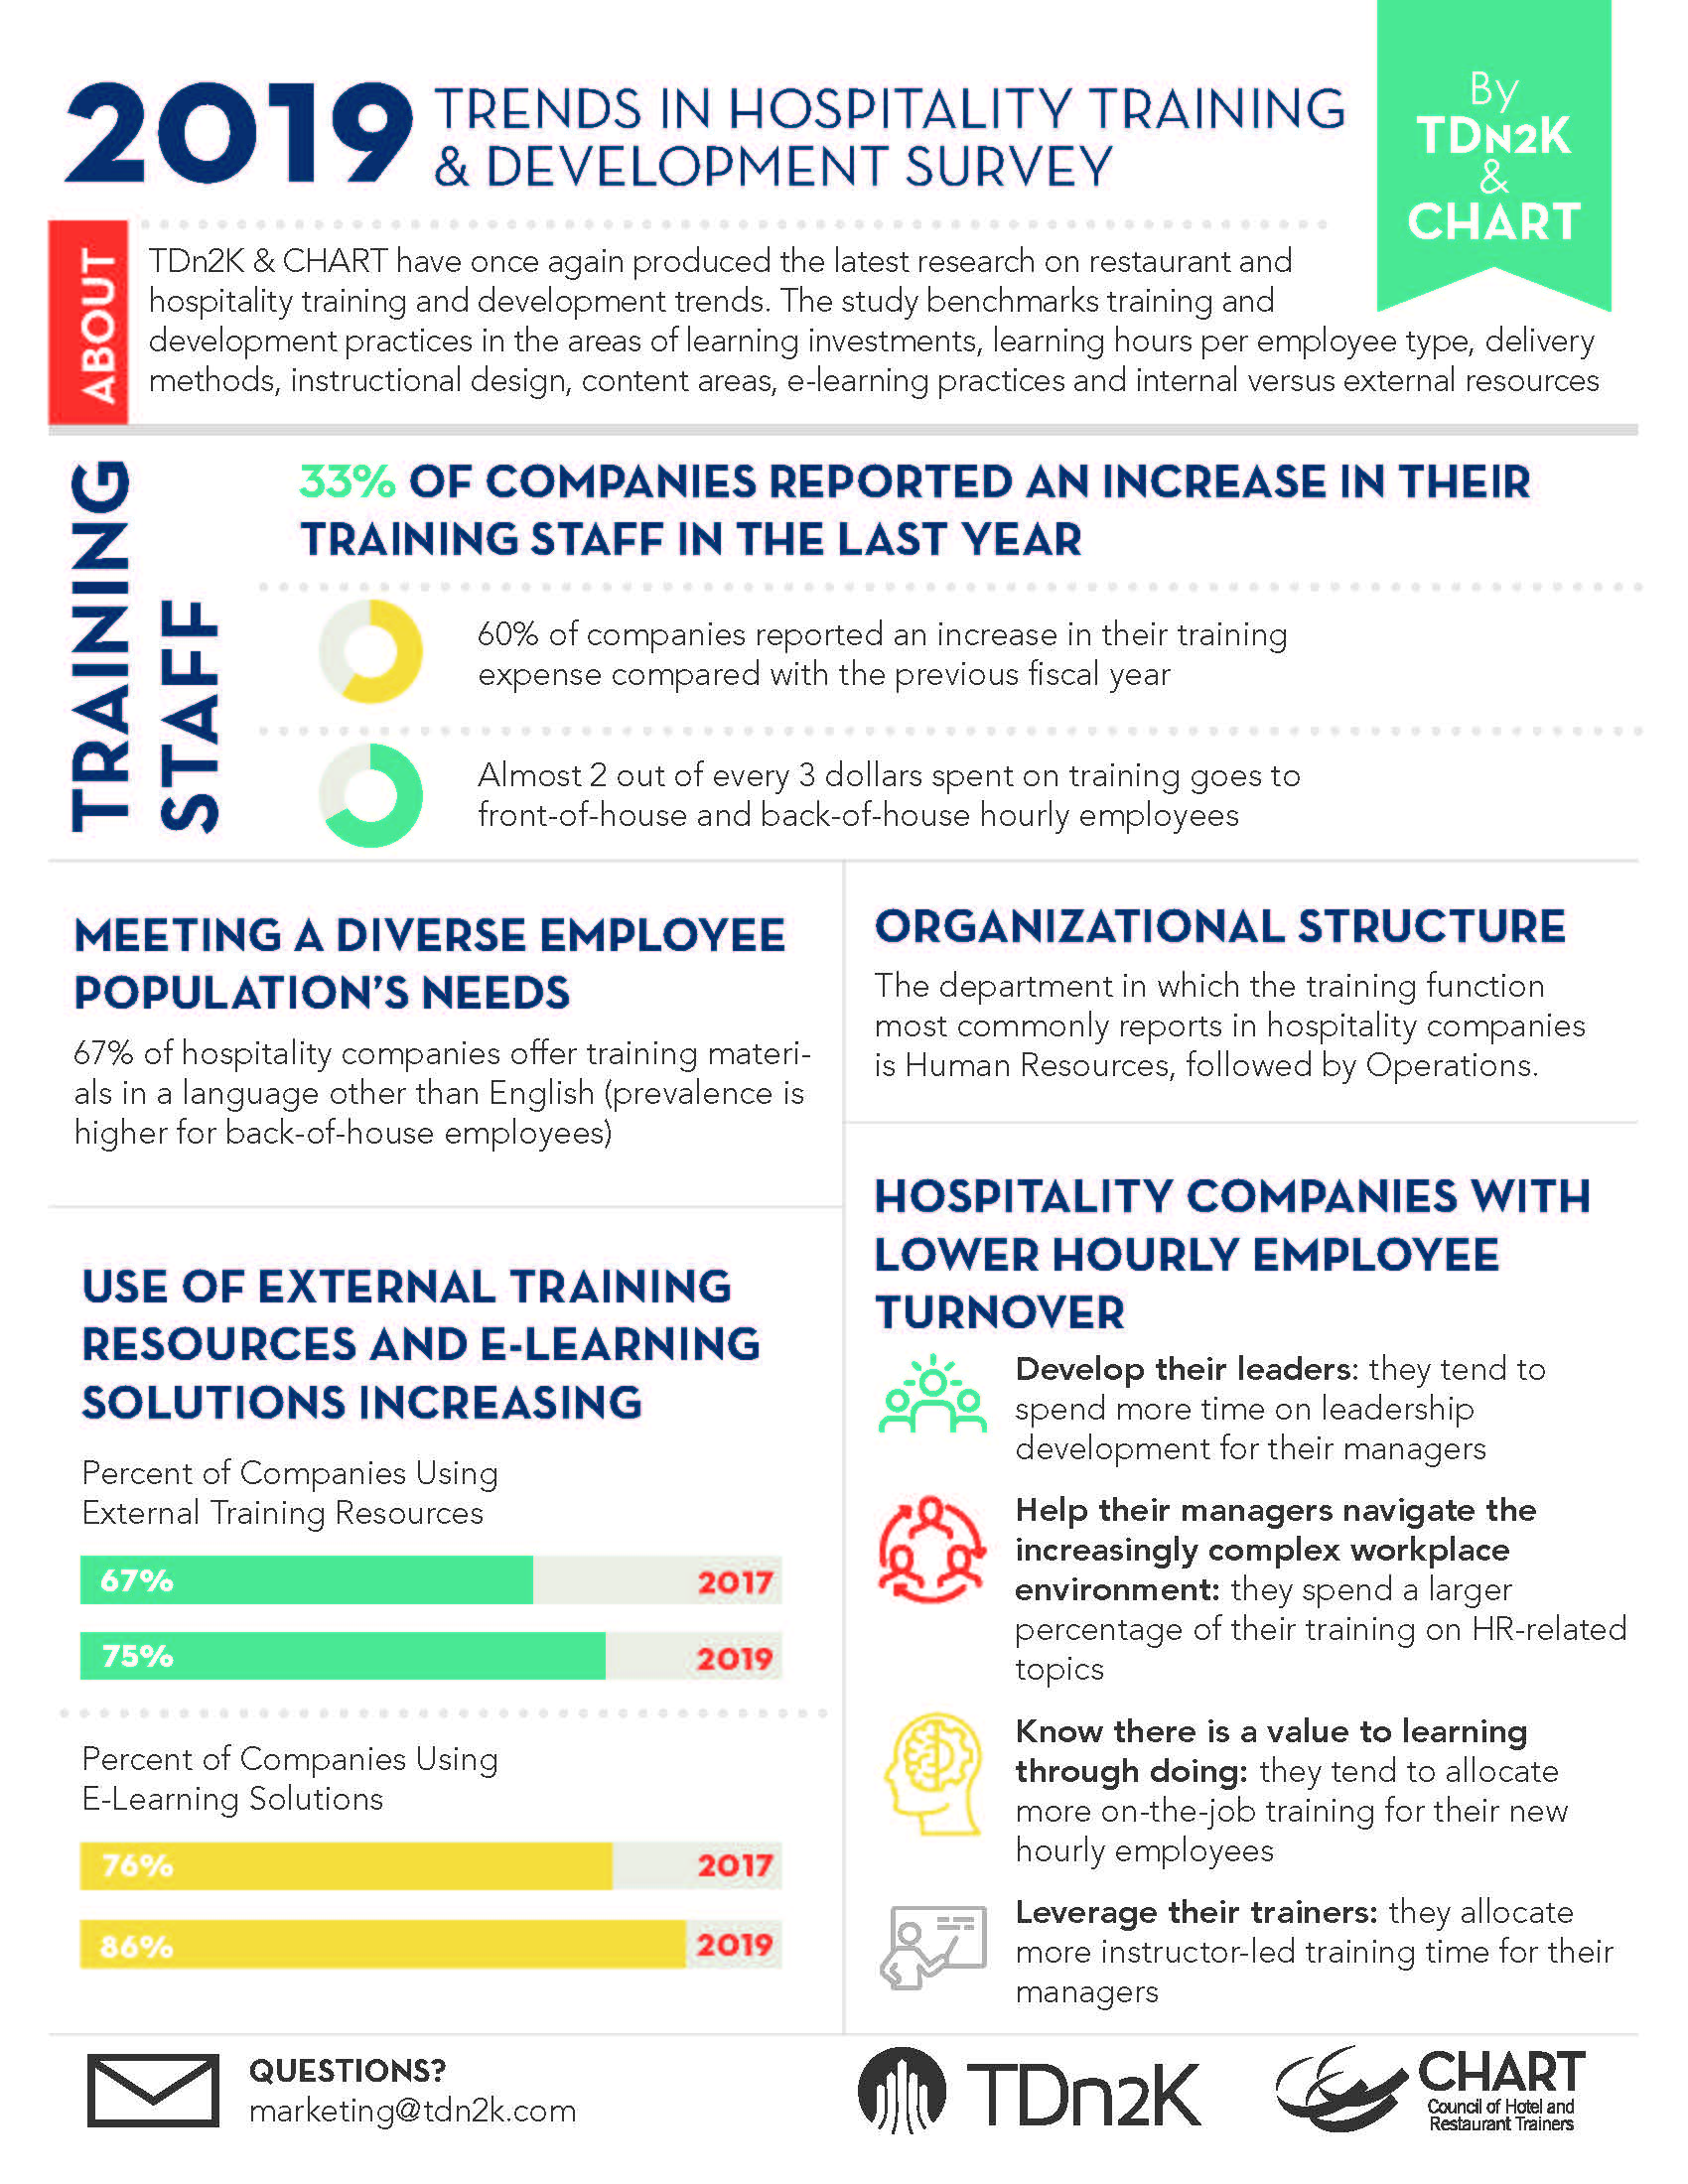 TRENDS IN HOSPITALITY TRAINING AND DEVELOPMENT INFOGRAPHIC